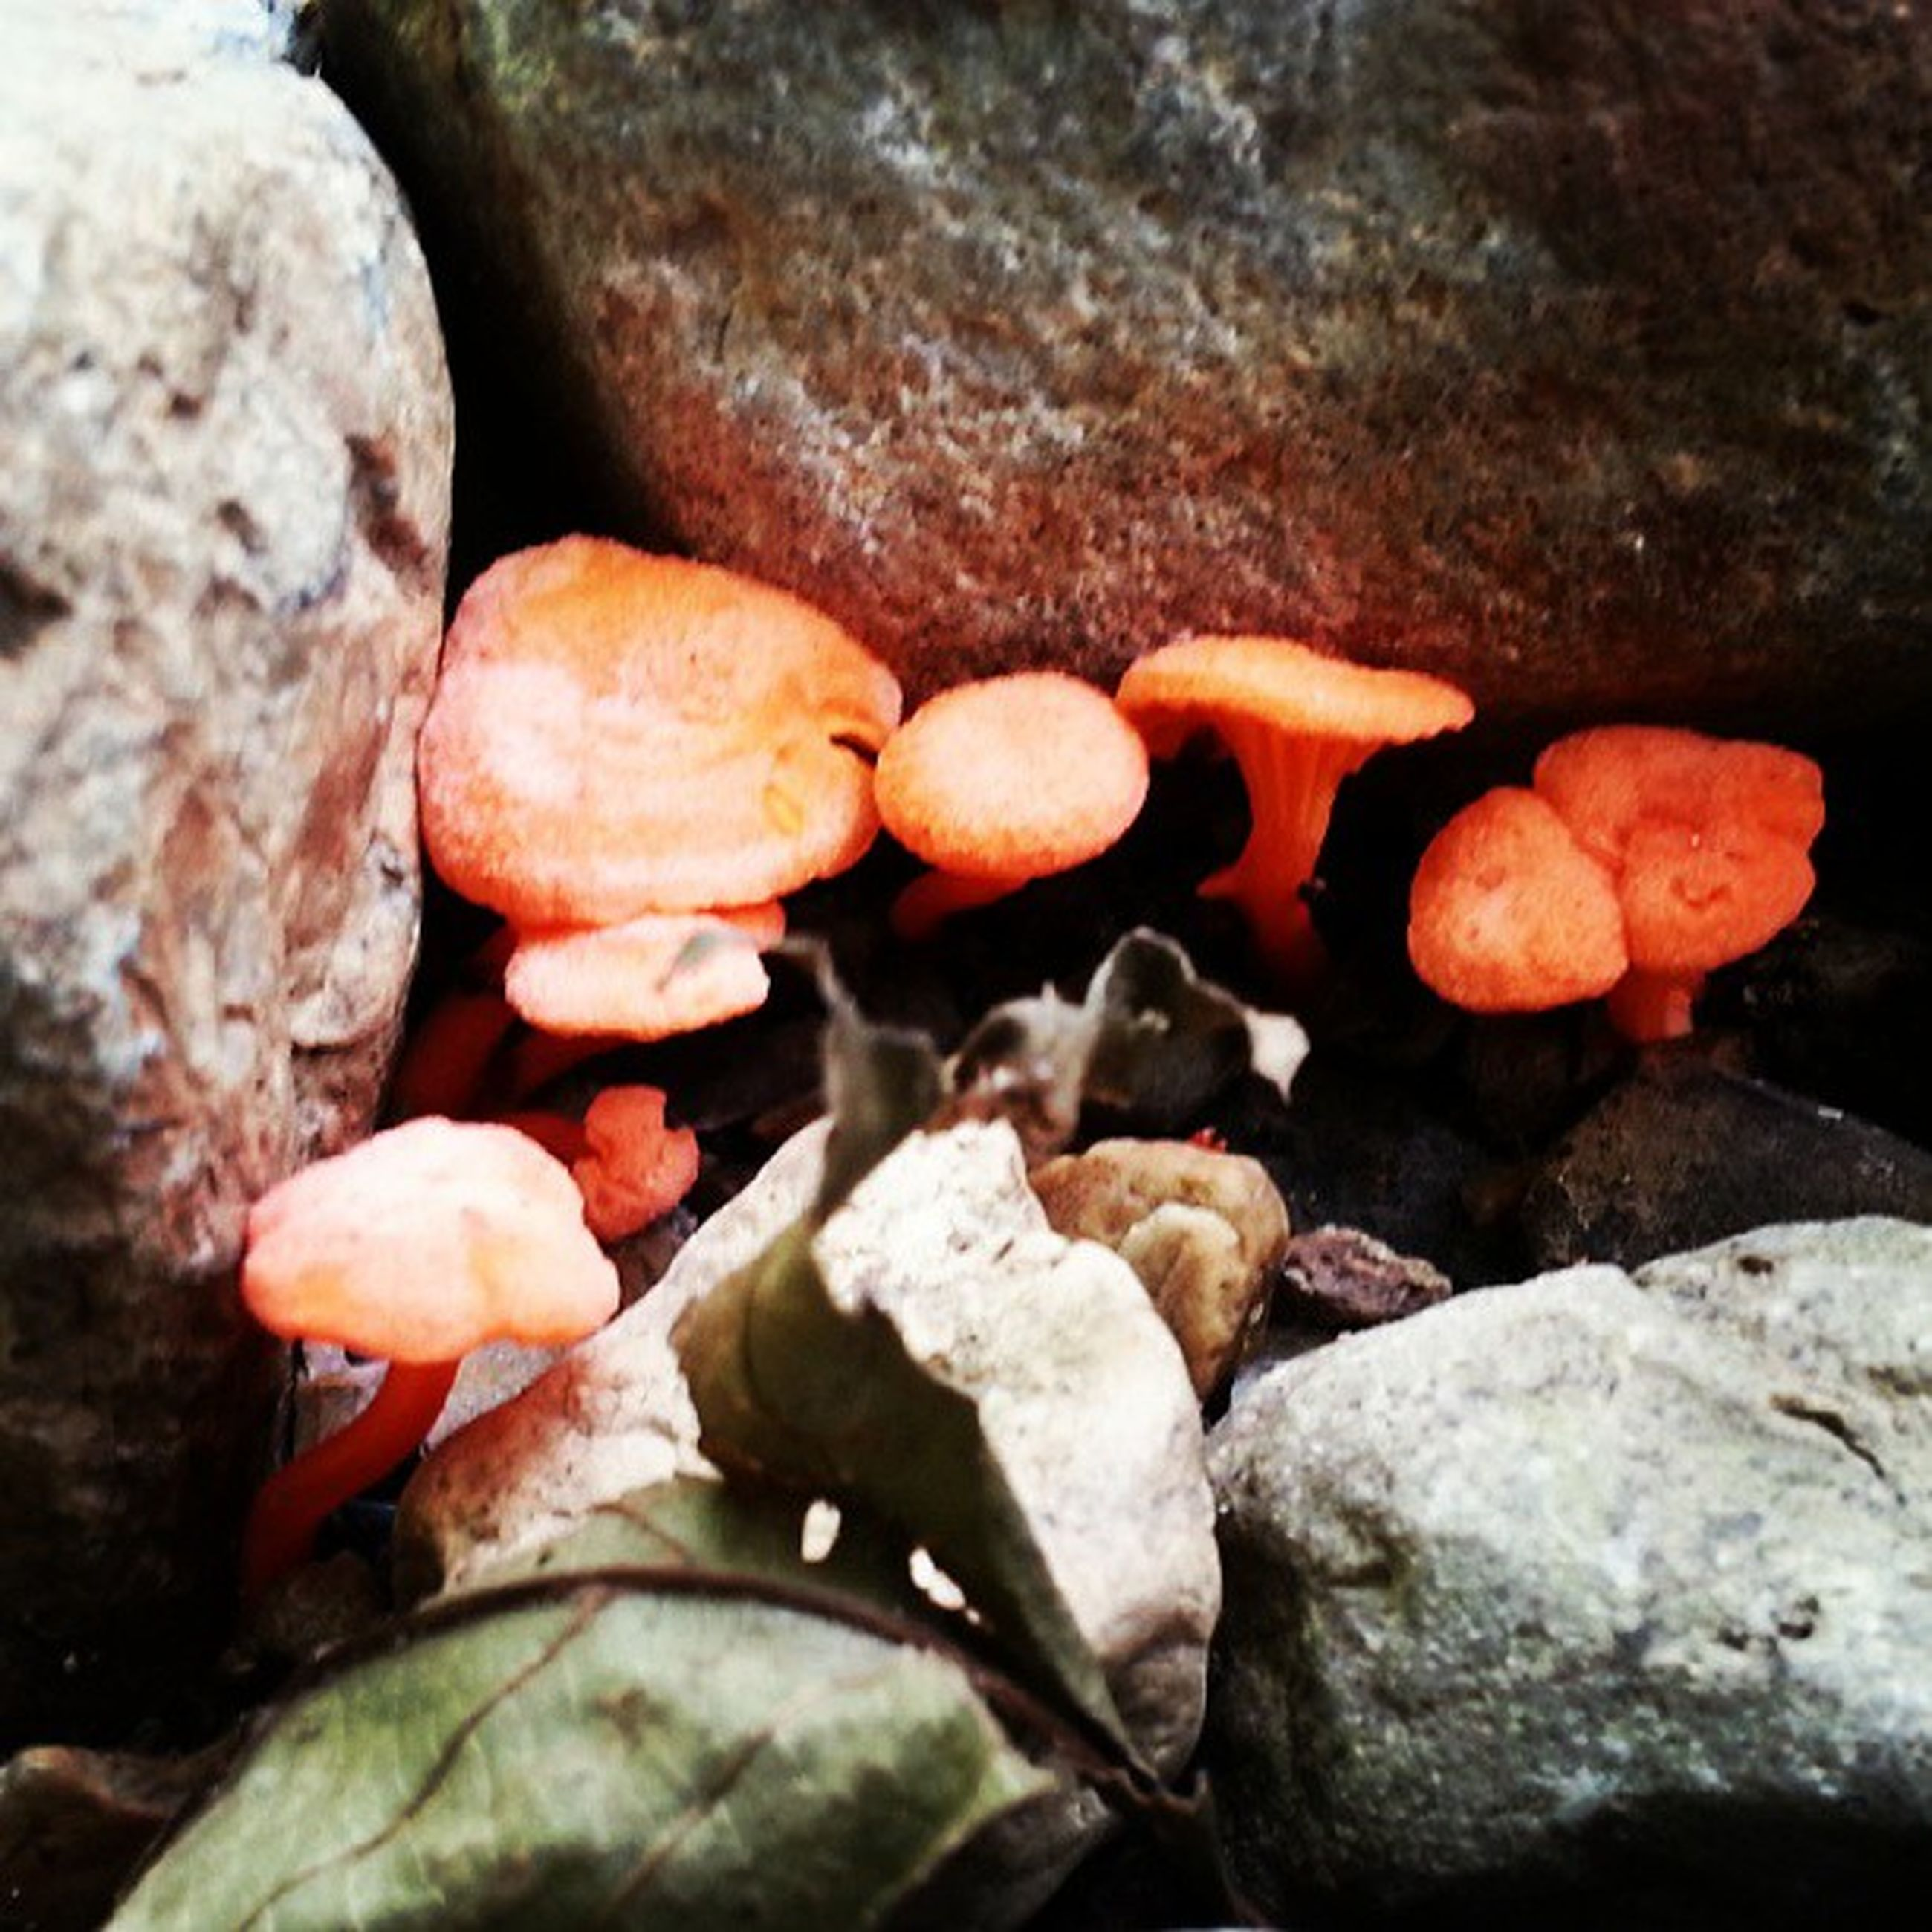 rock - object, nature, stone - object, close-up, rock, stone, outdoors, pebble, beauty in nature, no people, day, textured, tranquility, high angle view, mushroom, red, selective focus, field, fungus, freshness